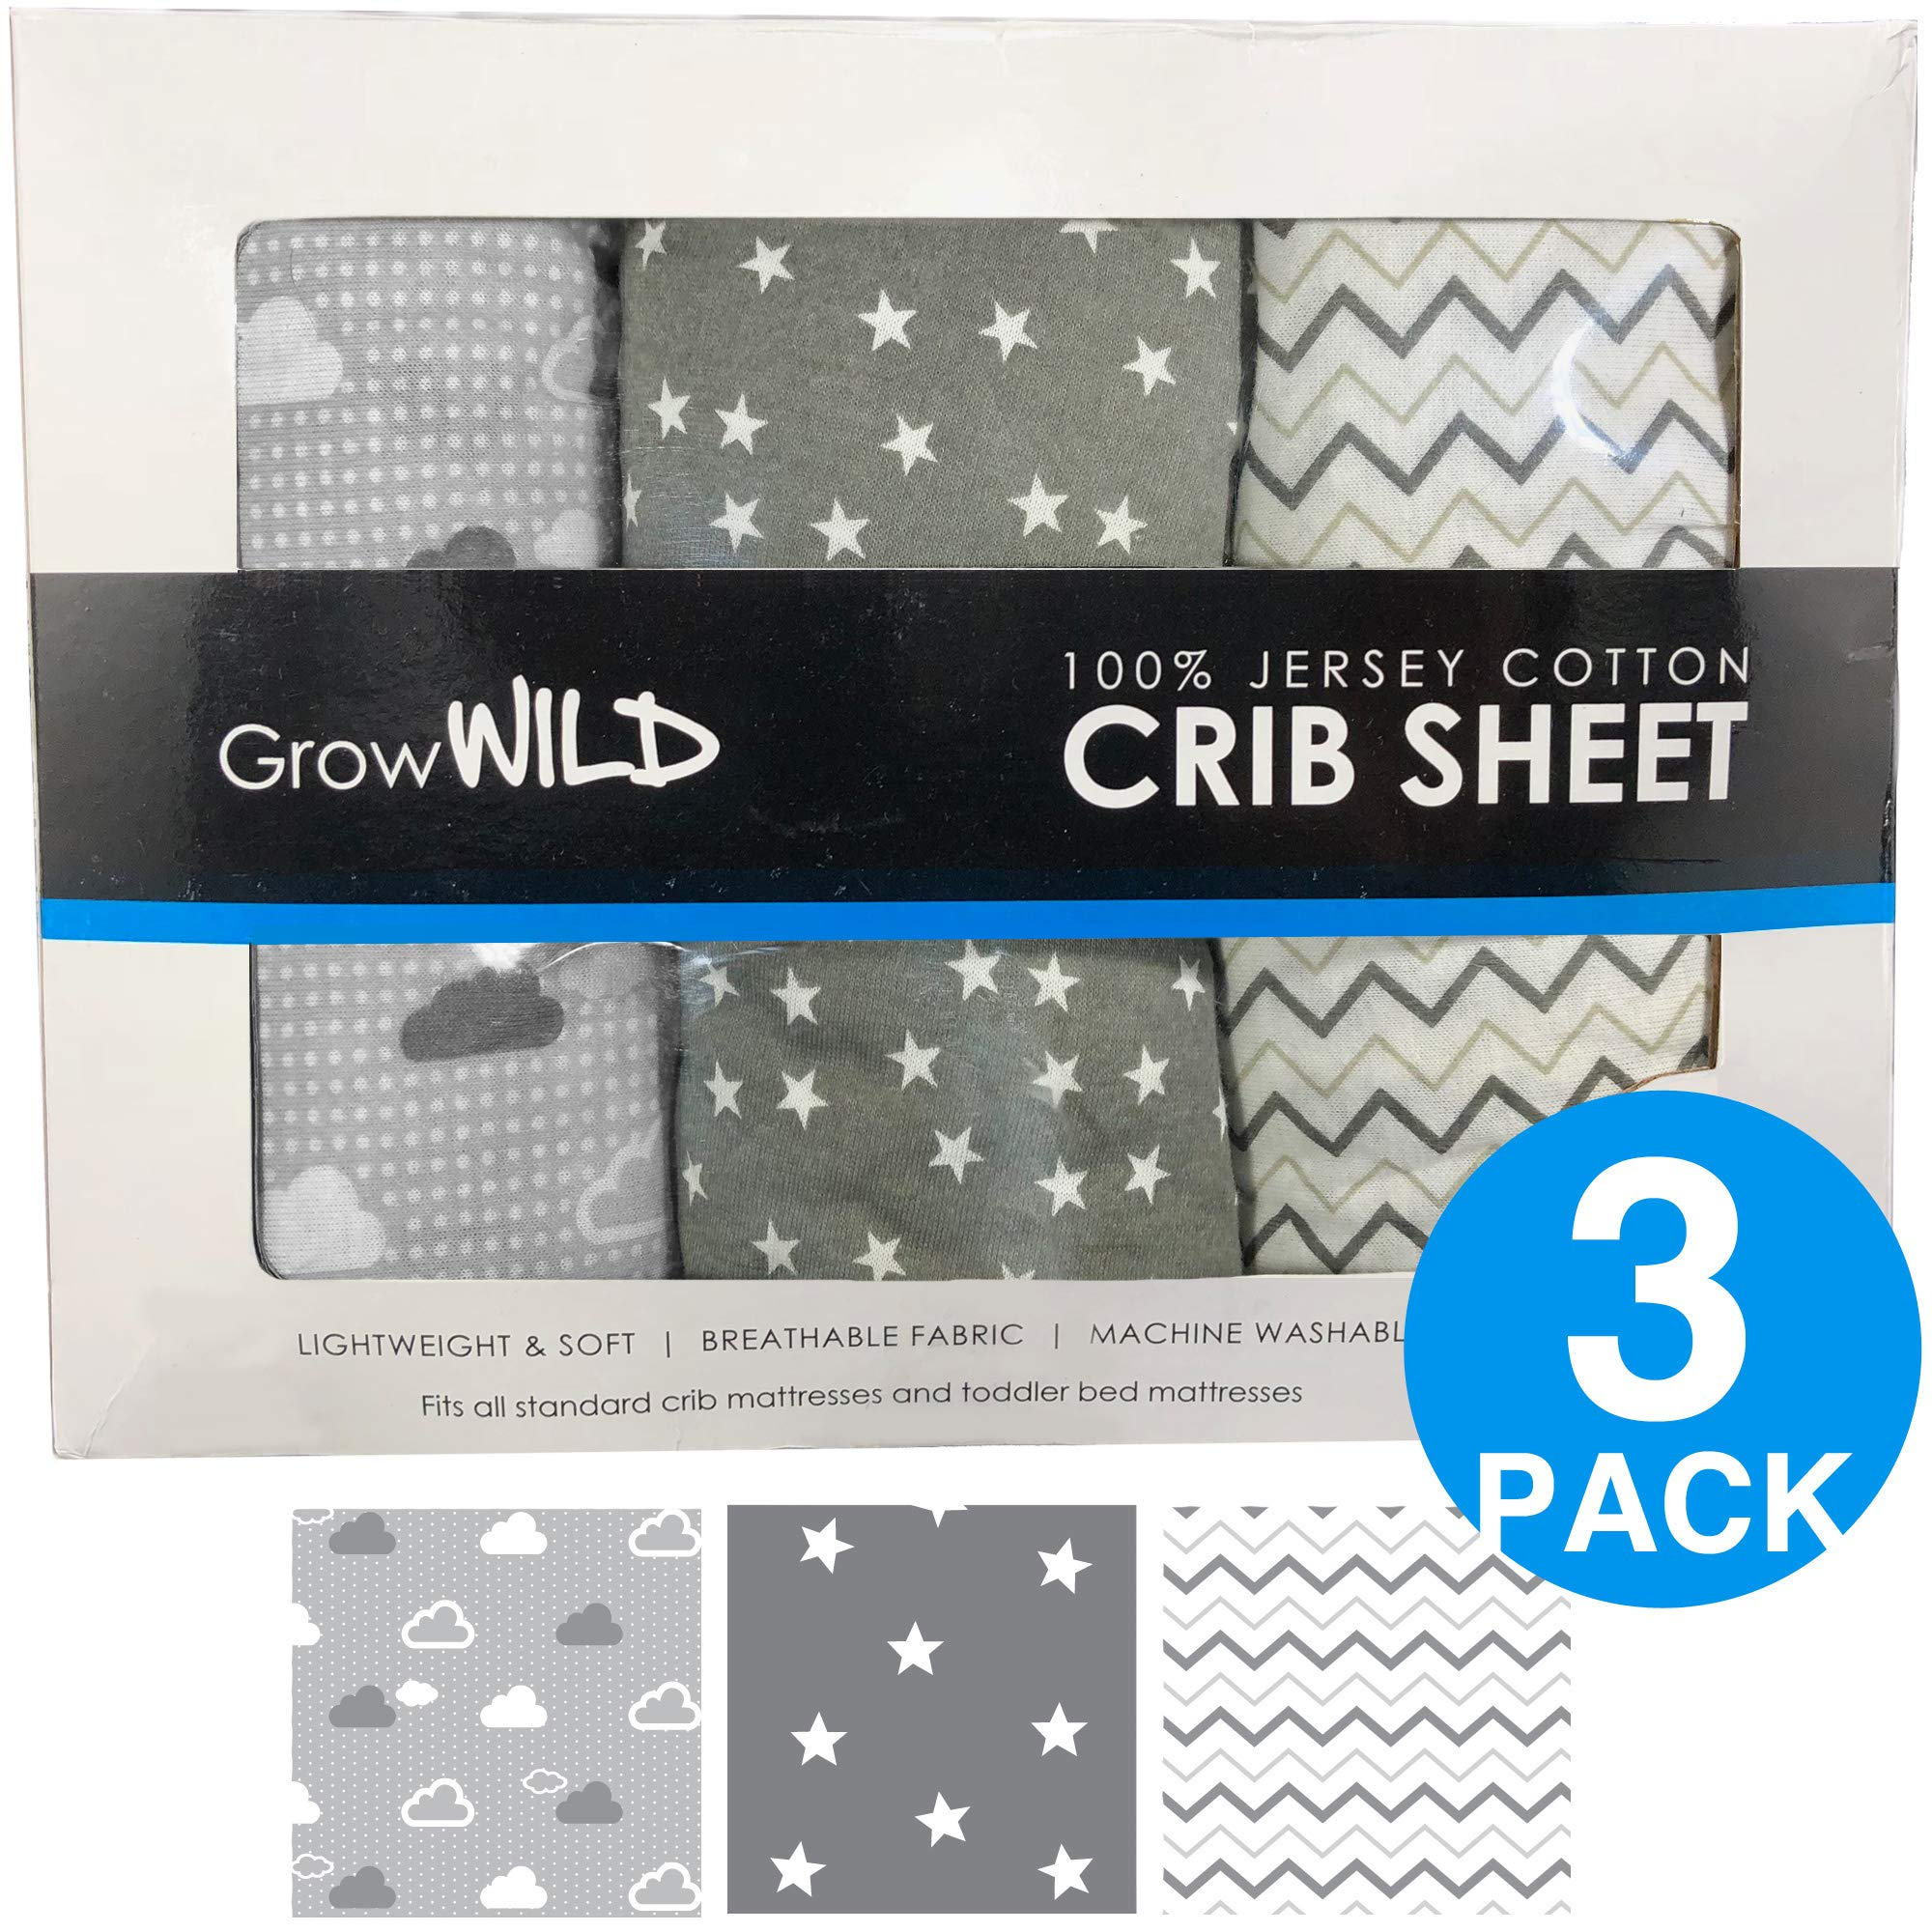 Premium Crib Sheets 3 Pack | Jersey Cotton Fitted Sheets for Boy or Girl | Standard Baby or Toddler Bed Mattress | Grey Clouds, Stars, Chevron